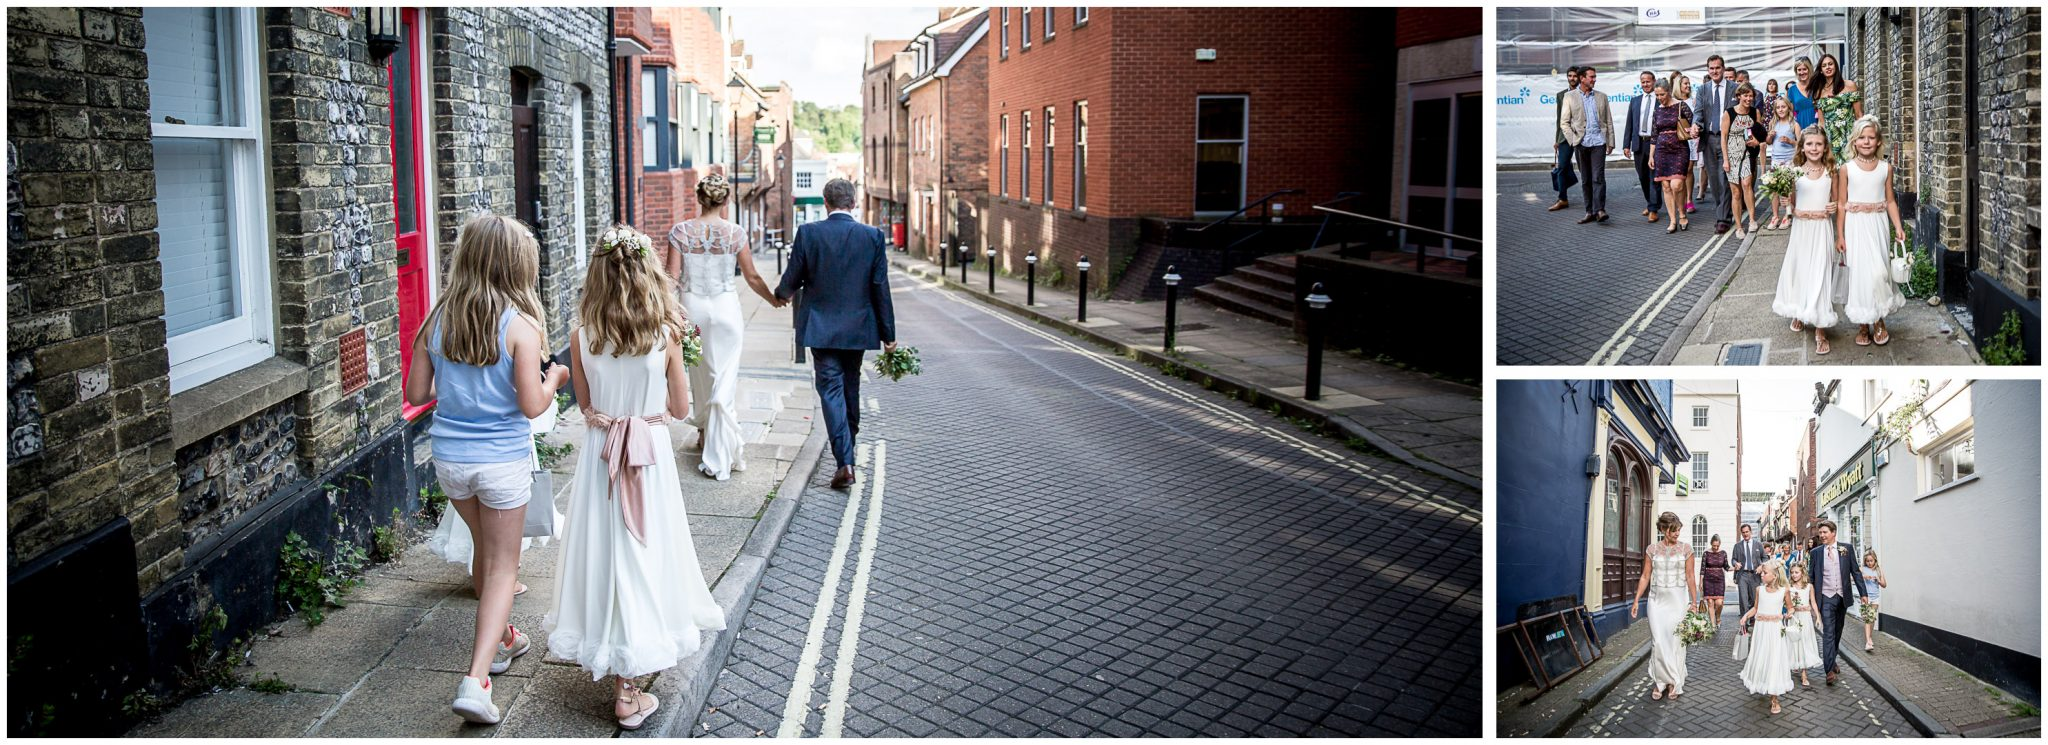 The wedding party walks through the back streets of Winchester en route to the reception